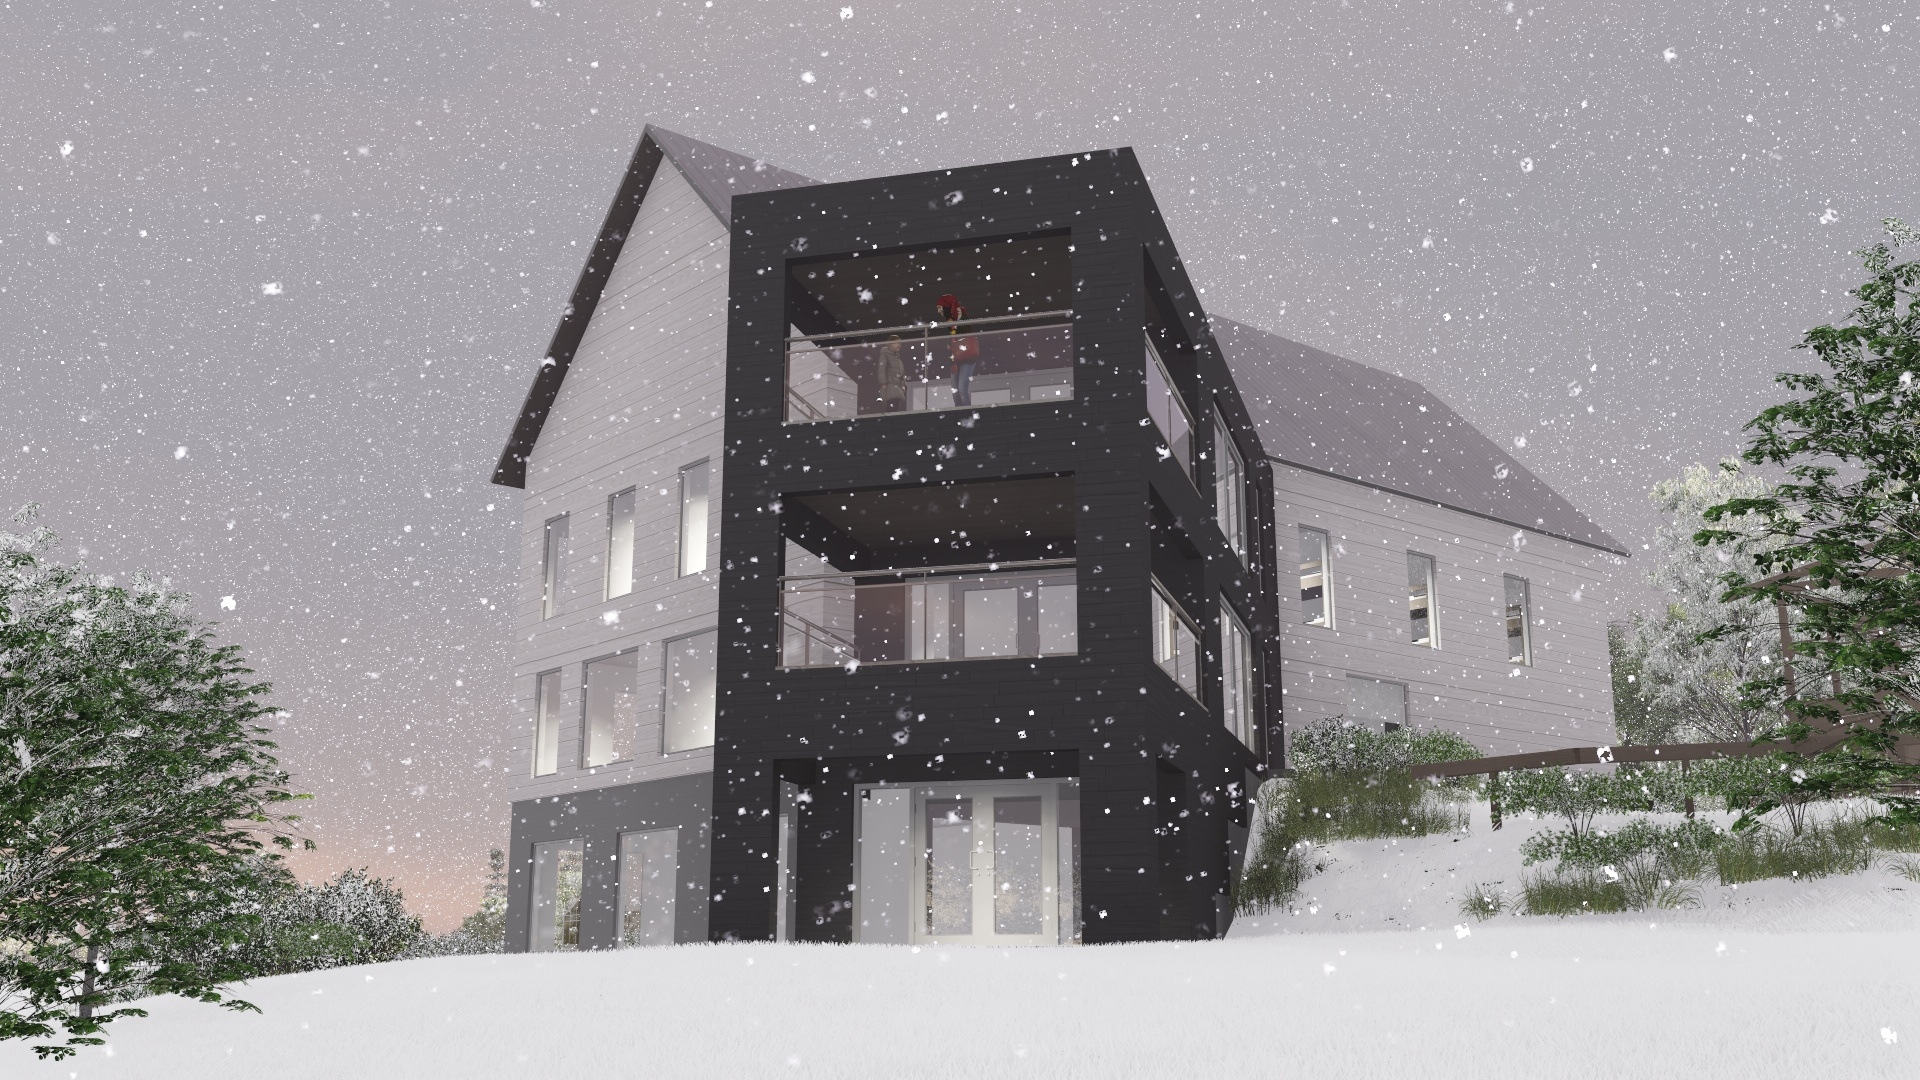 Kimbercote Accommodations Building - 005C - WITH SNOW.jpg